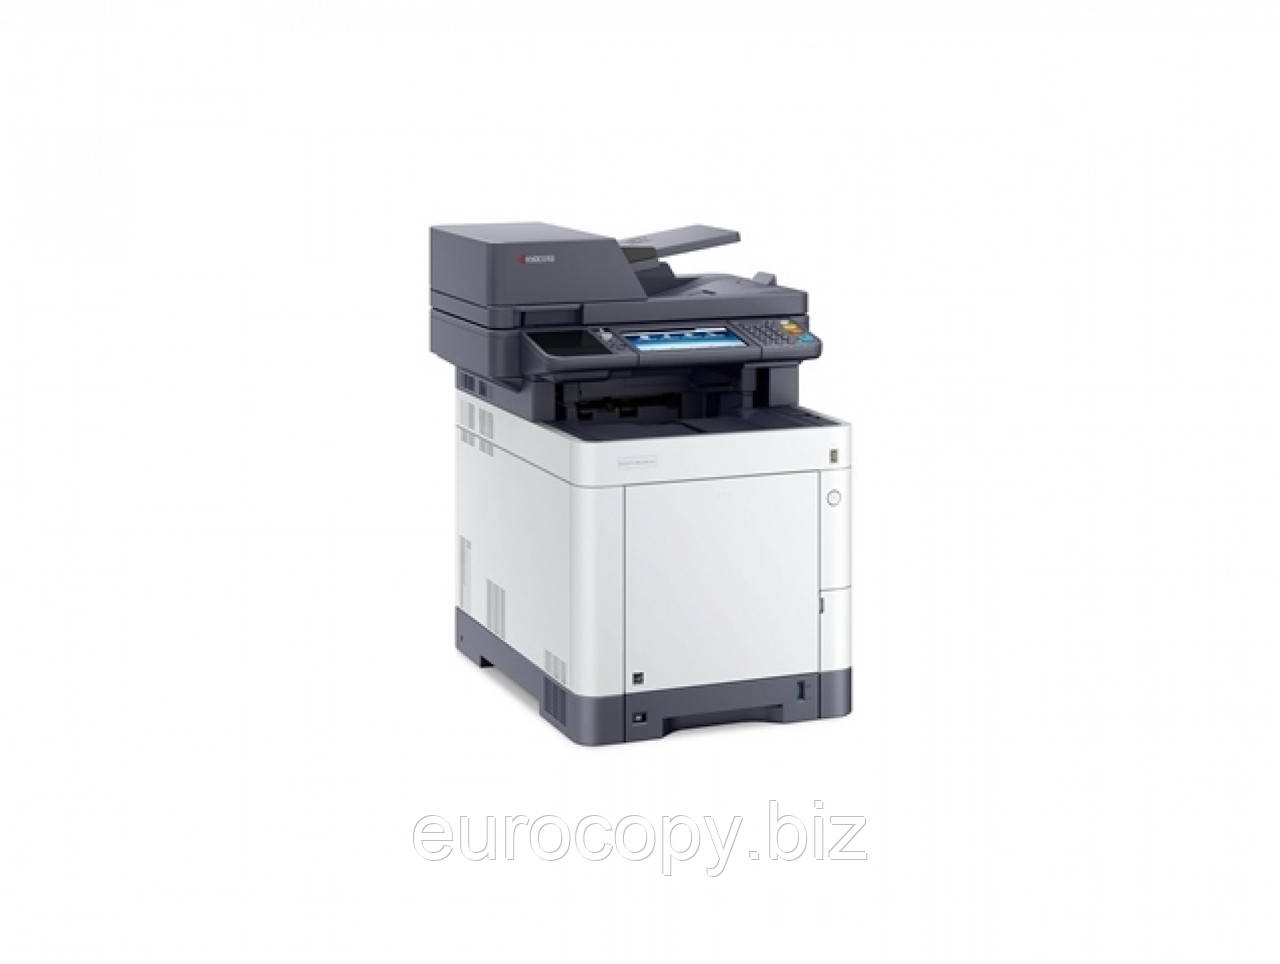 БФП M6230cidn А4 Kyocera ECOSYS Color (1102TY3NL1)